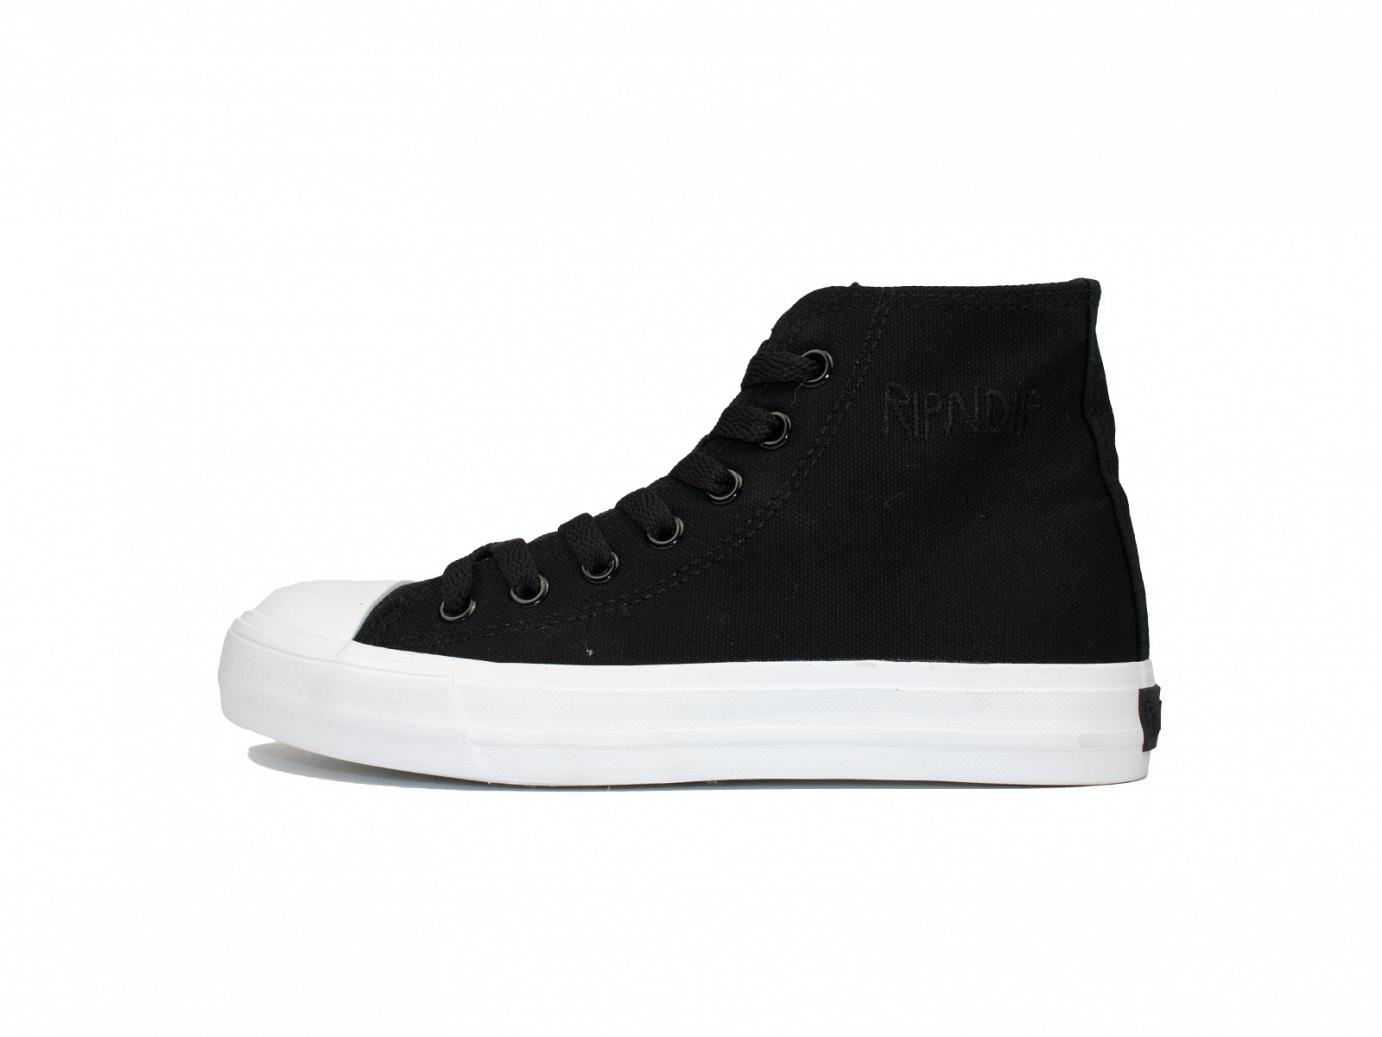 62cc0cd683e lord nermal high top shoes - Swearhand